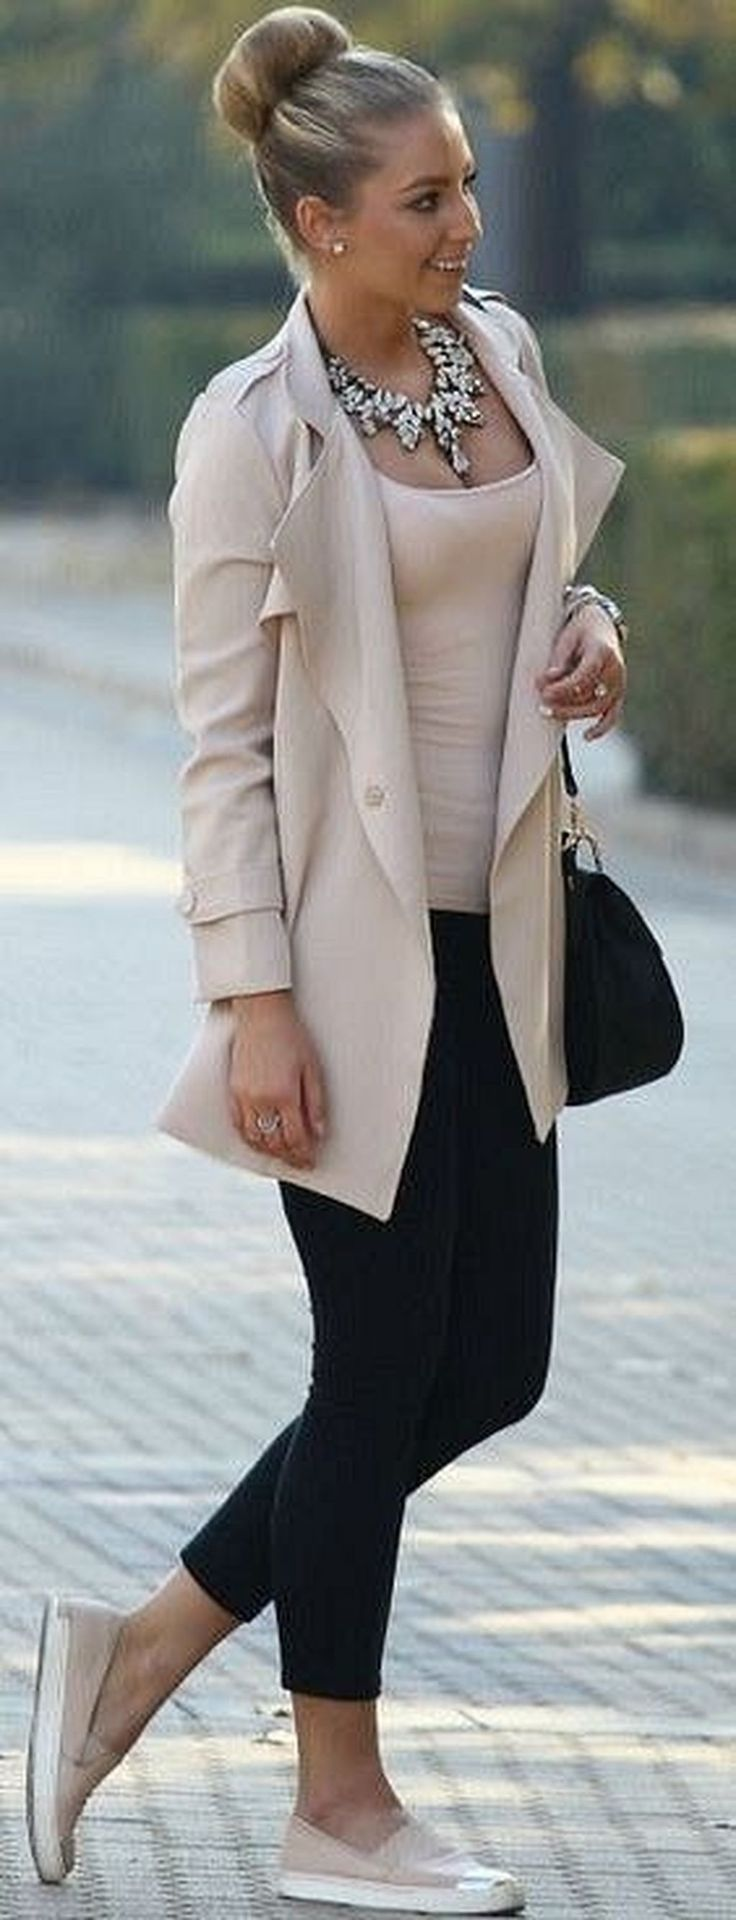 Cute-Spring-Chic-Office-Outfits-Ideas-38-1.jpg (1024×2672)